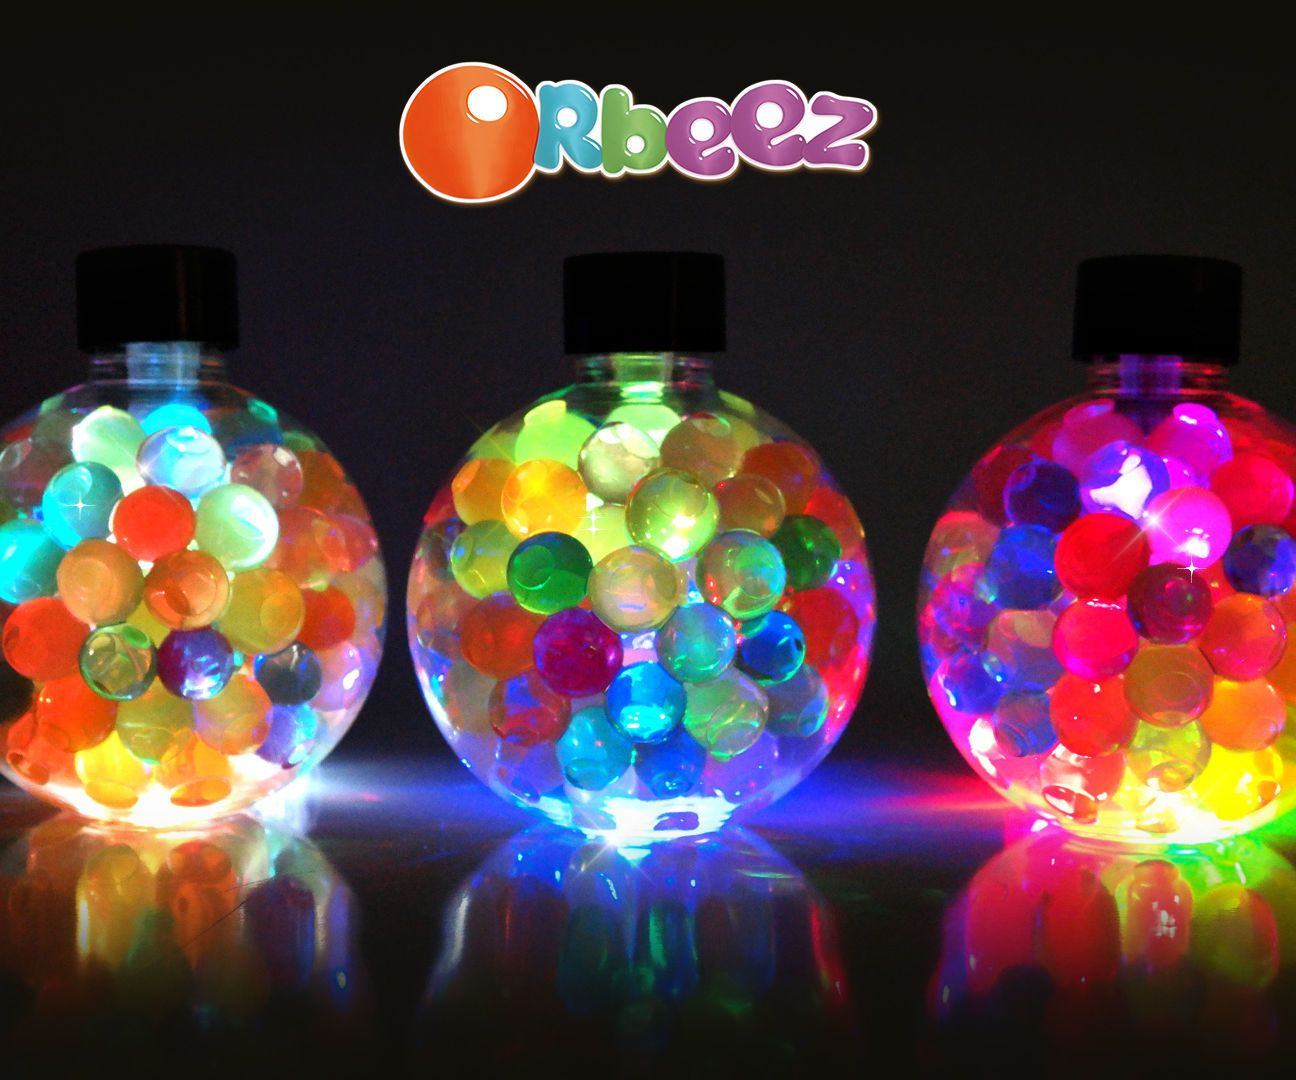 Mood Lighting Ideas From Visualchillout: How To Make Orbeez Mood Lamp ! DIY Orbeez LED Mood Light